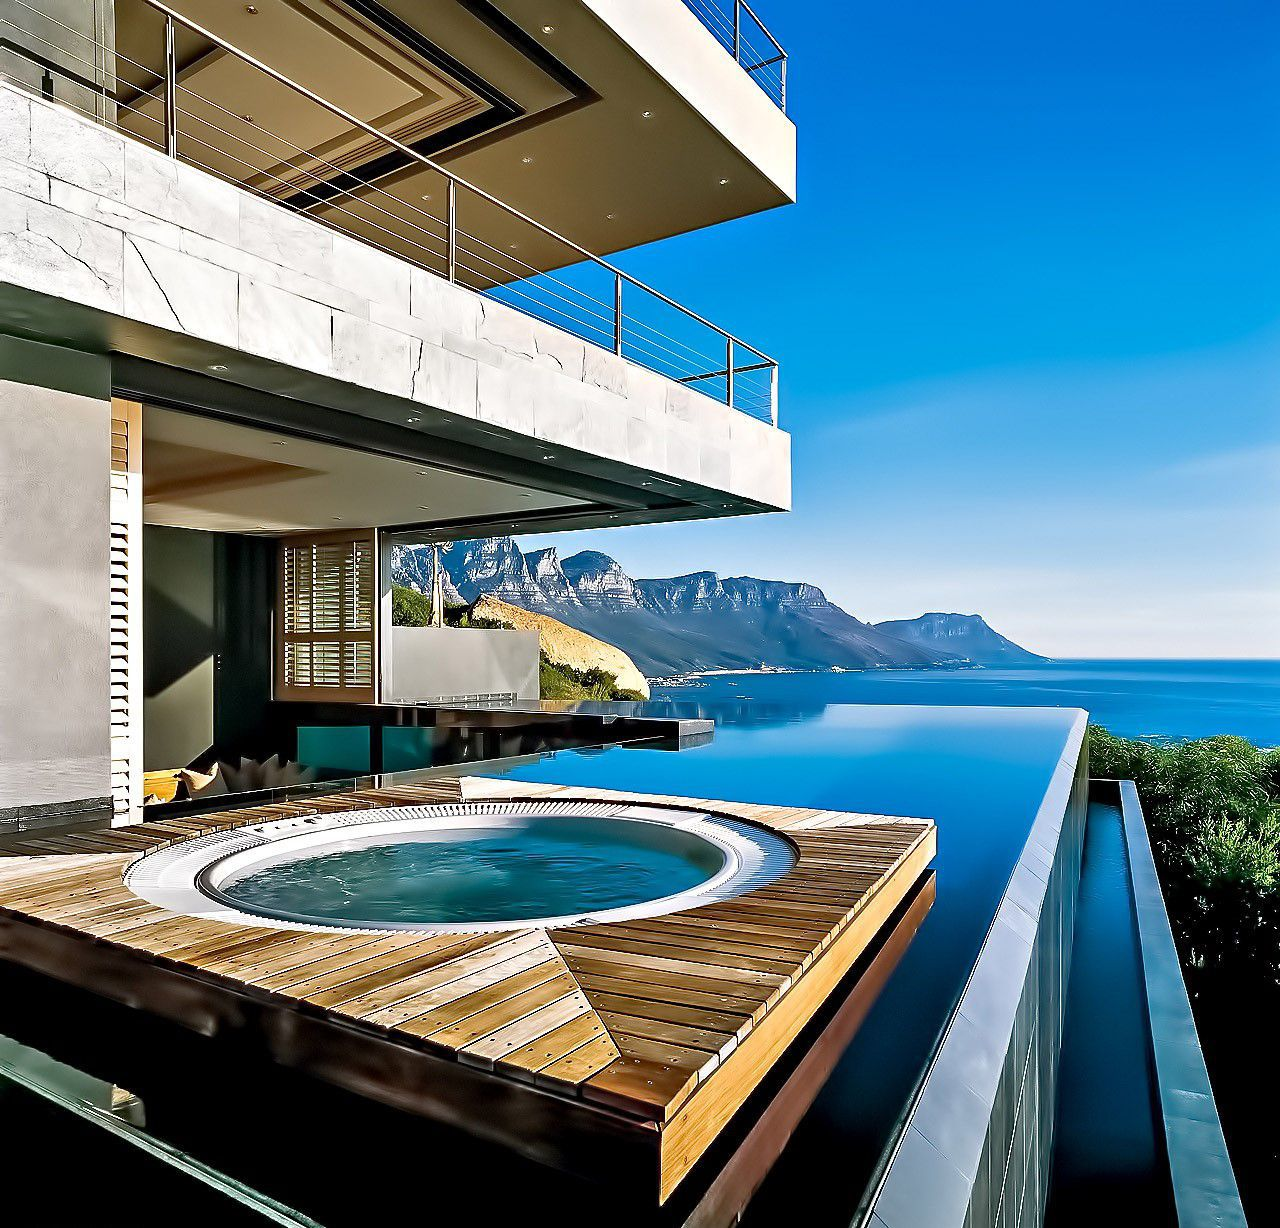 Luxury Saint Leon Villa in Cape Town, South Africa by SAOTA